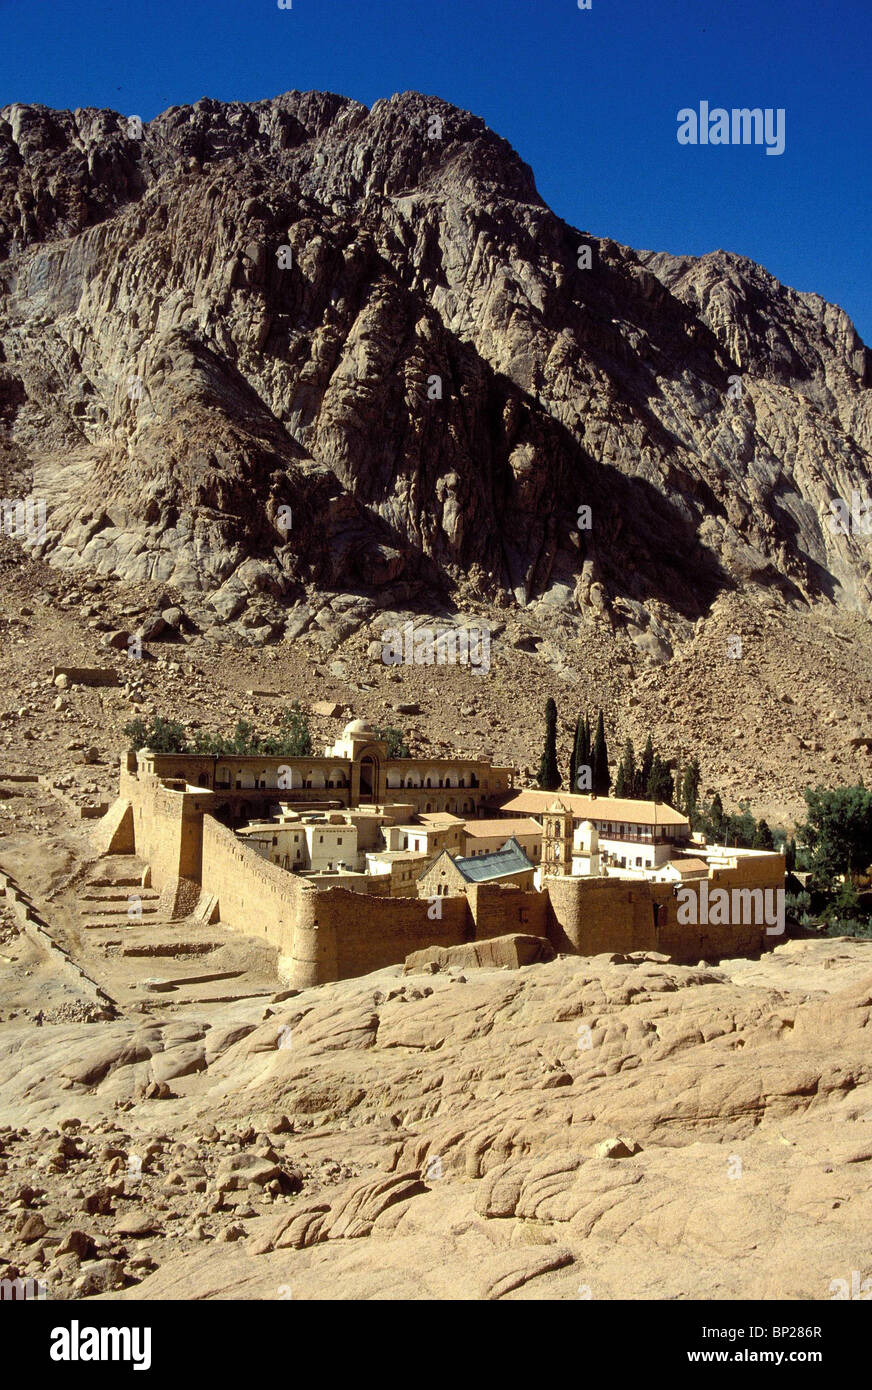 1896. THE MONASTERY OF ST. CATHERINA AT THE BASE OF MT. SINAI - Stock Image